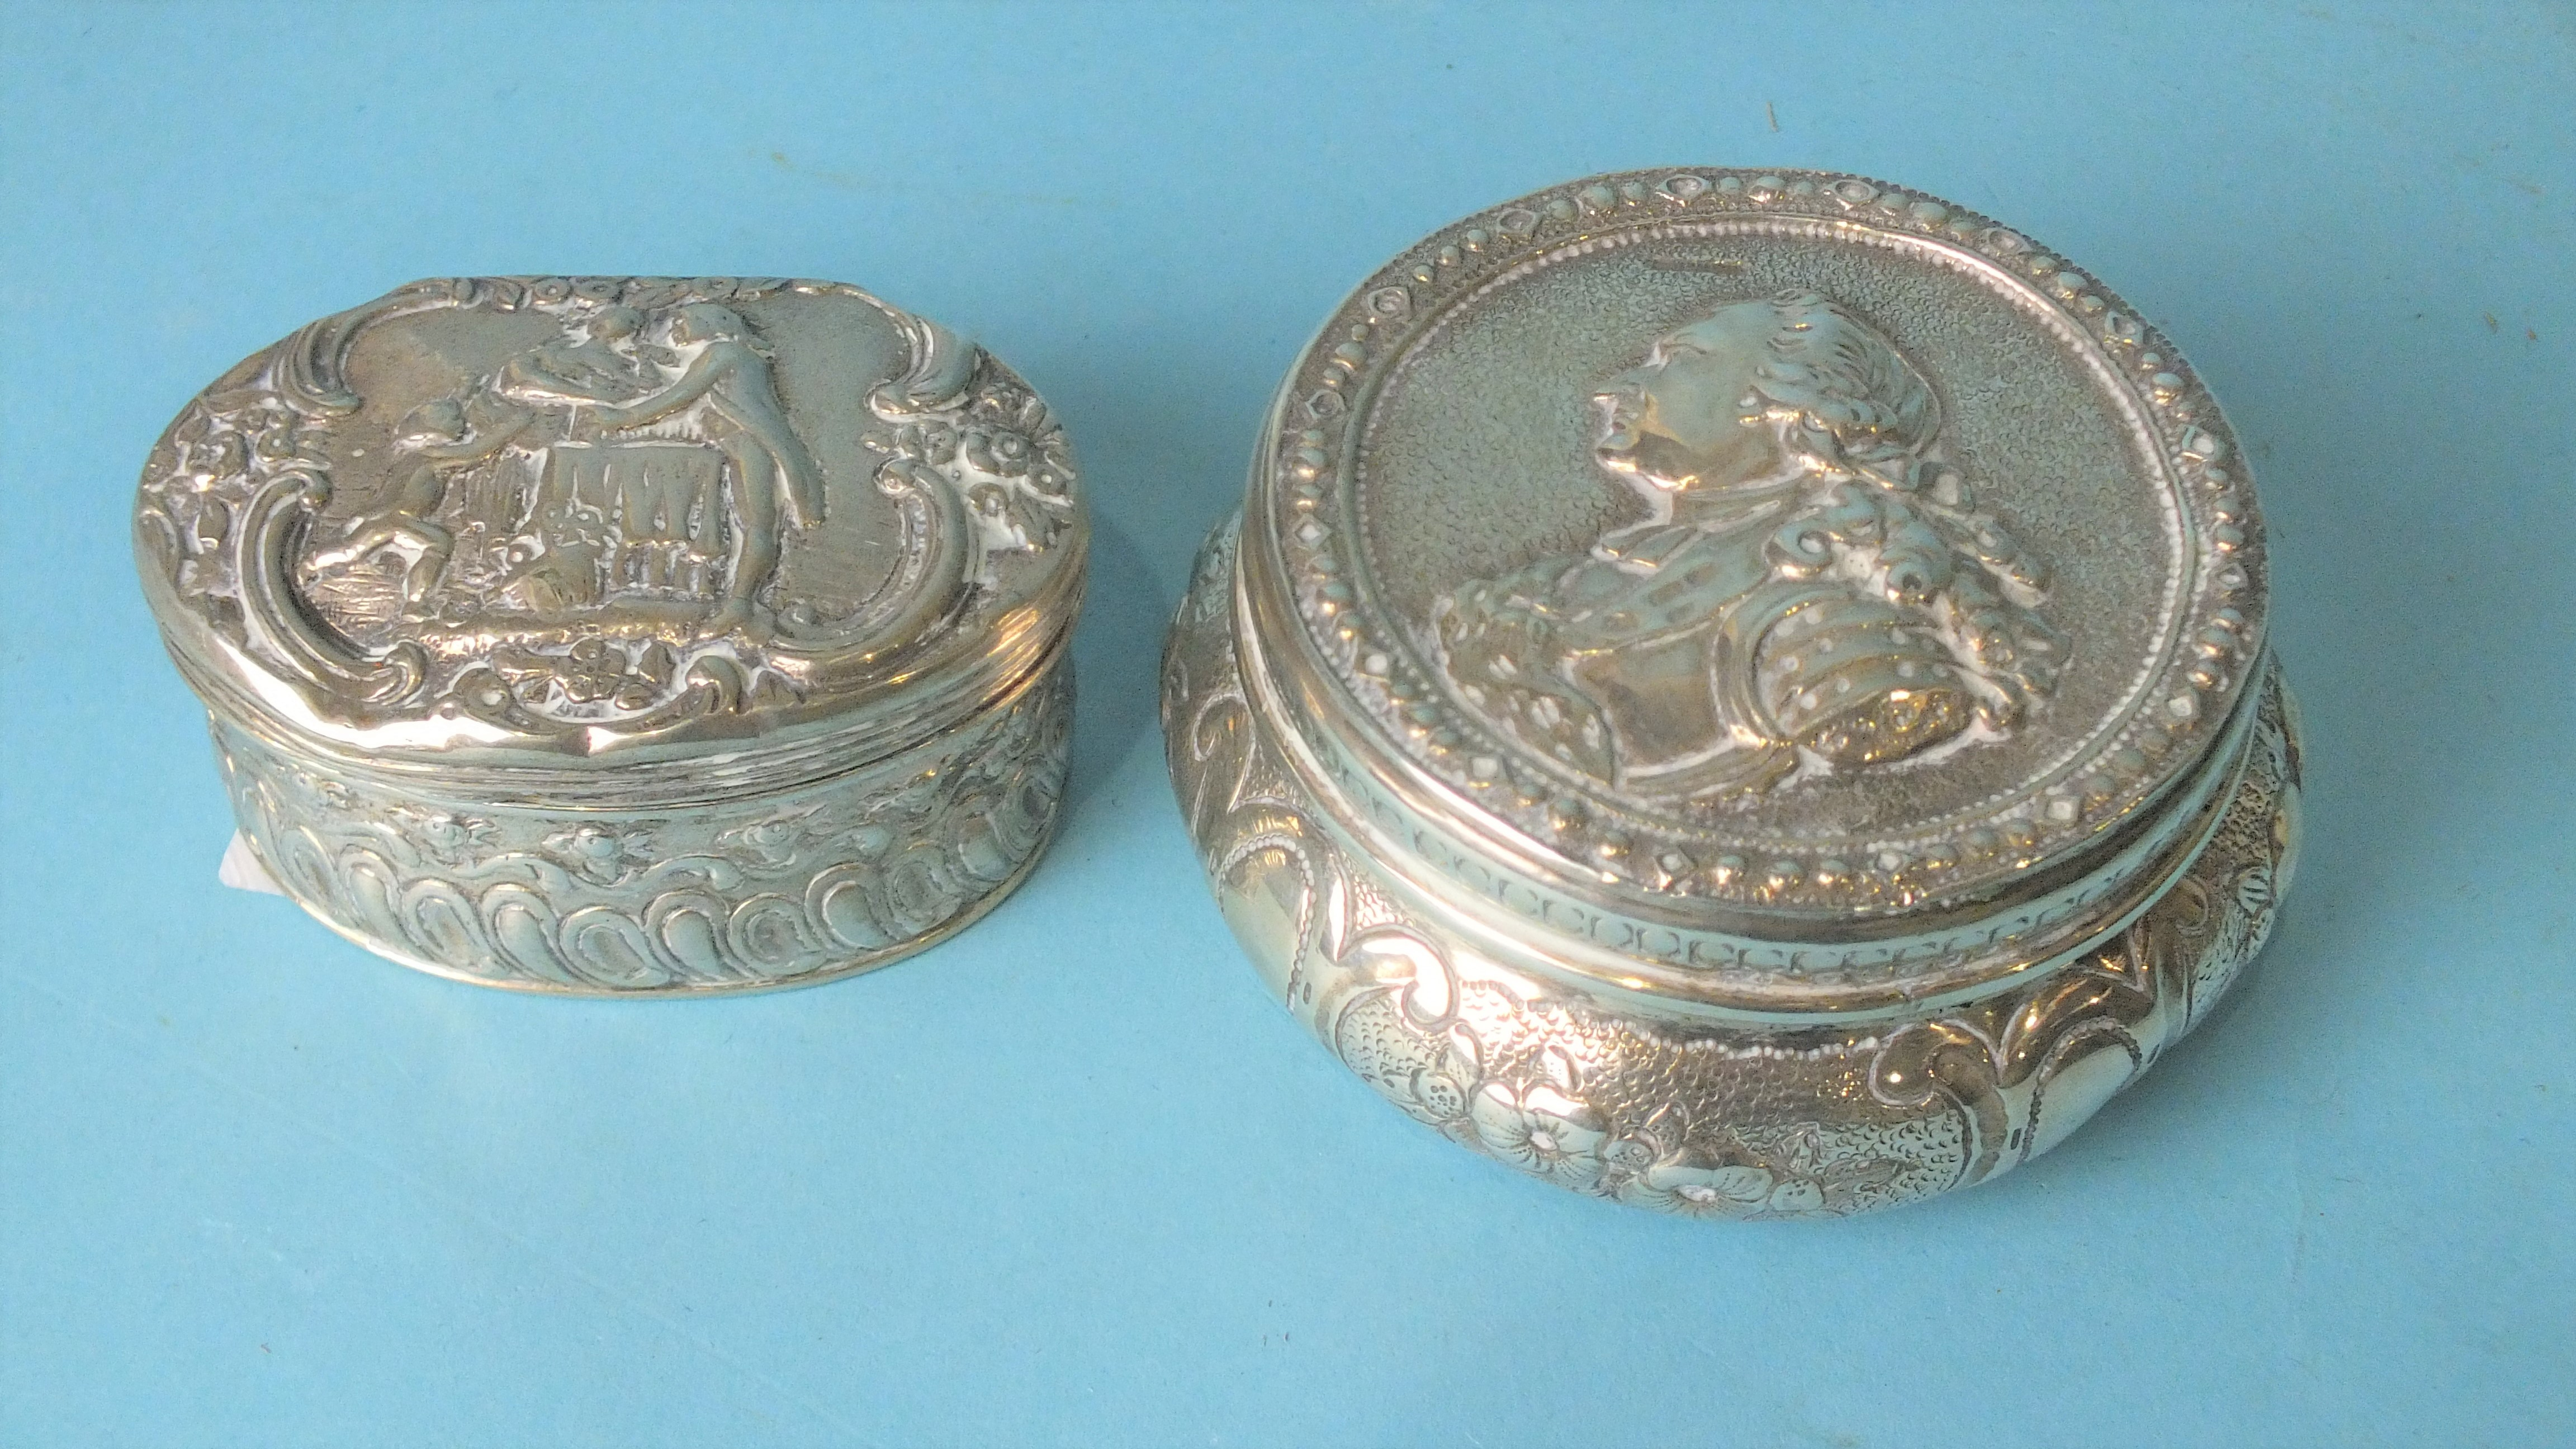 A French circular box and cover, the lid embossed with bust of a nobleman, 7cm diameter, with import